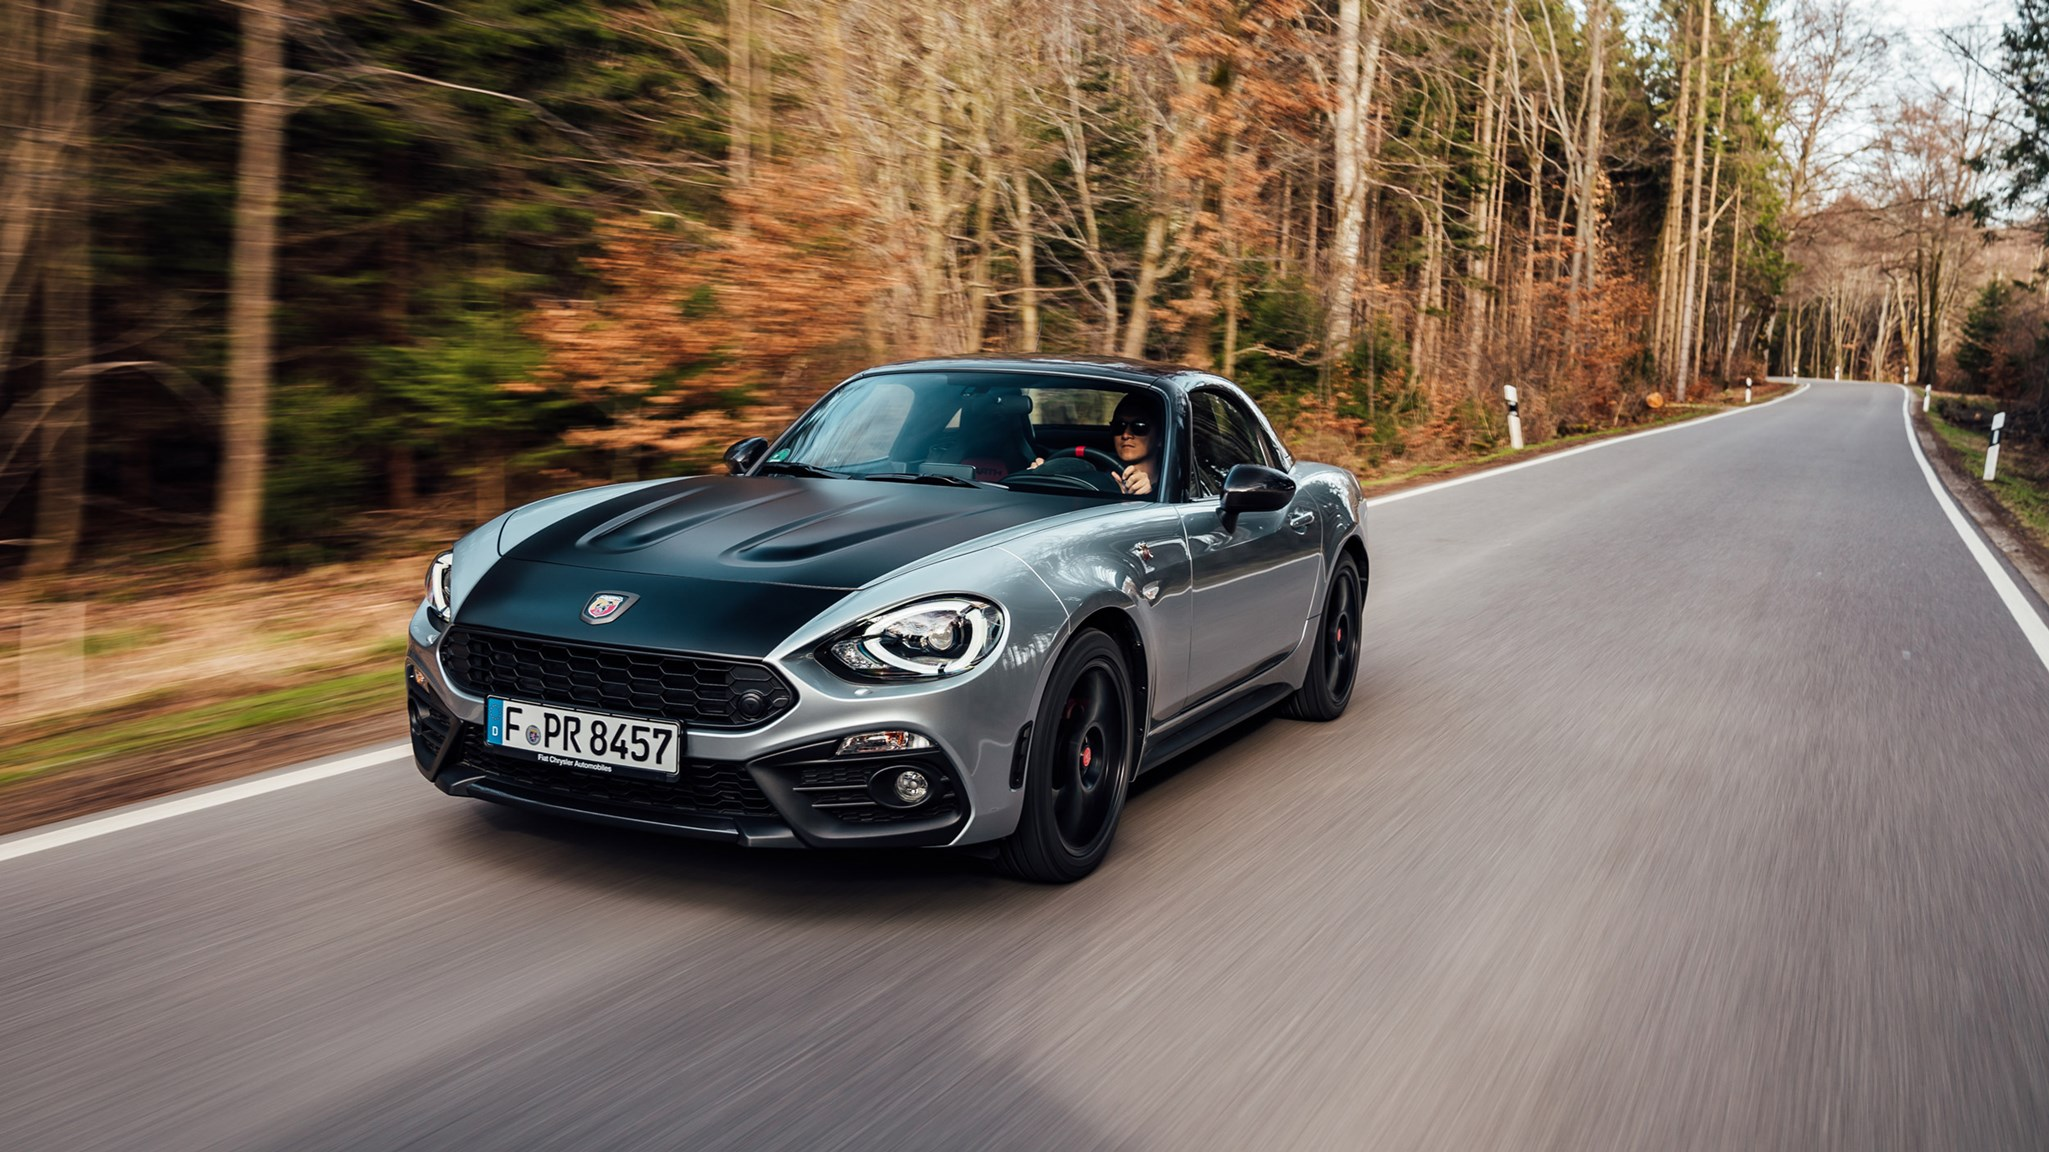 Infiniti Lease Deals >> Abarth 124 Spider (2018) review: GT version driven | CAR ...